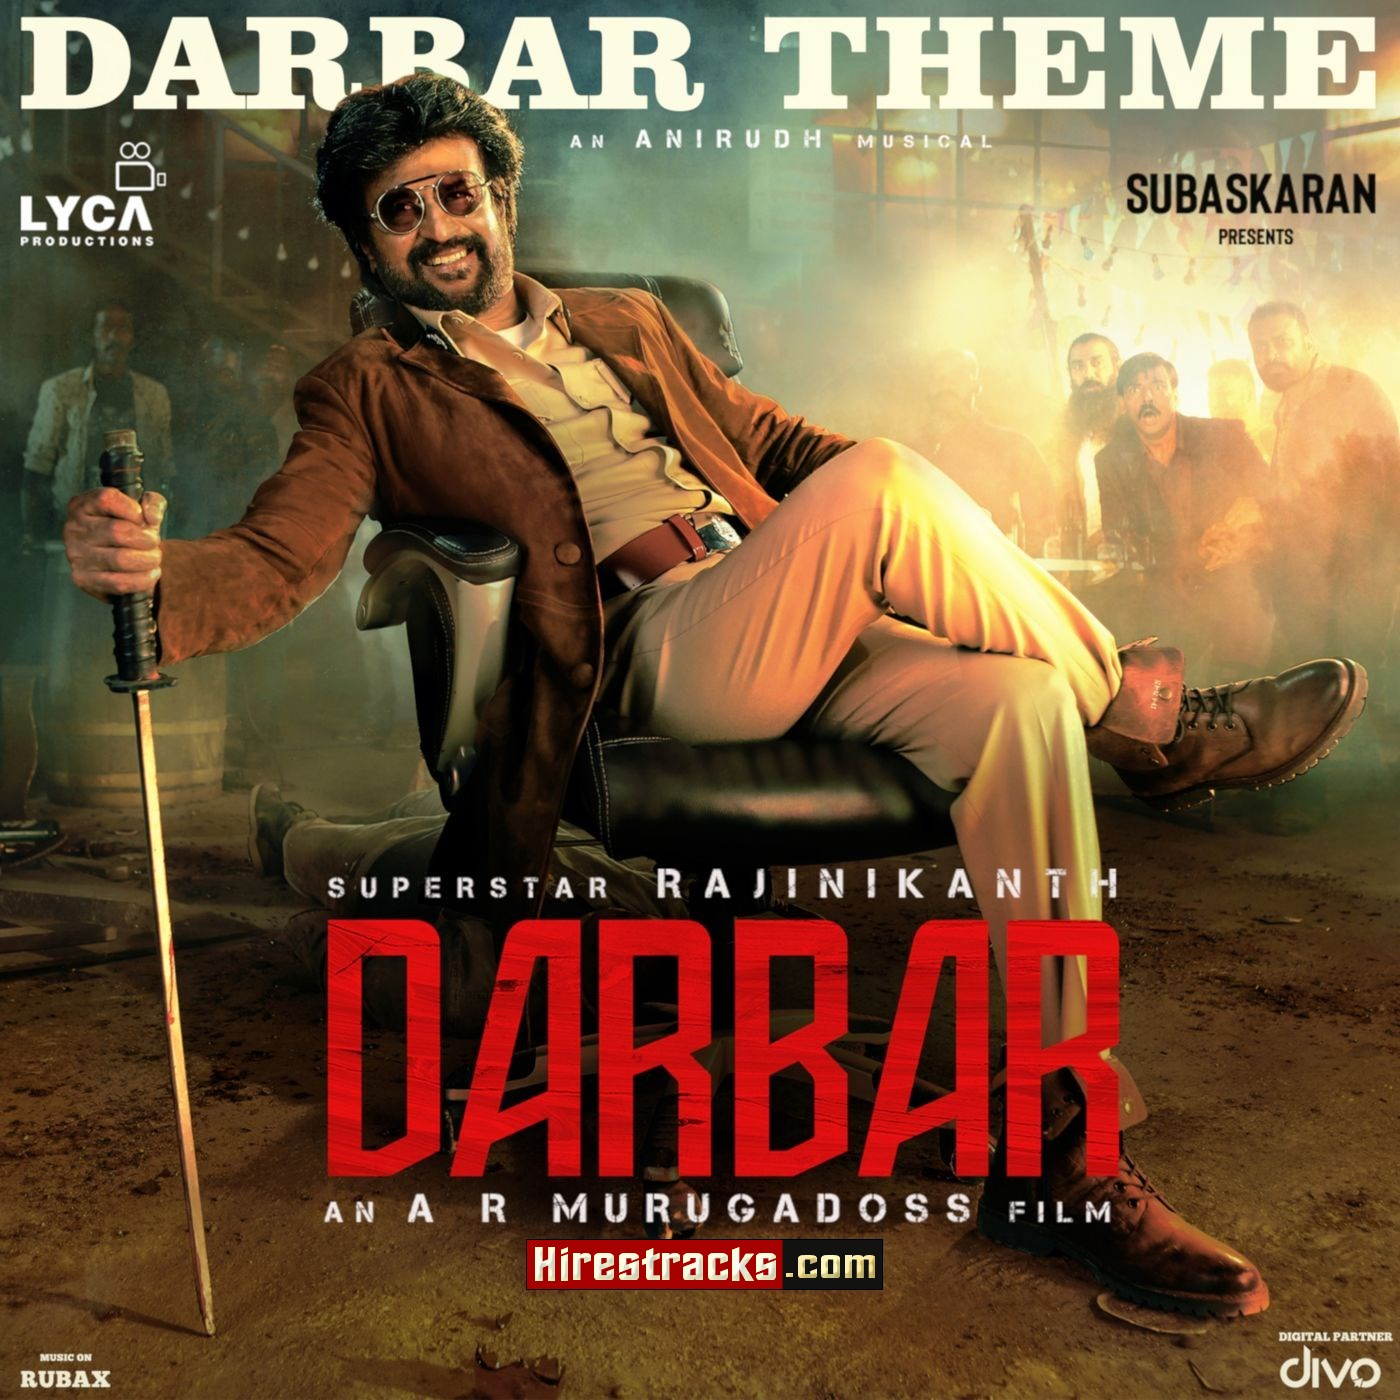 Thalaivar Theme (From Darbar) (2019) (Anirudh Ravichander) (Divo Tv Private Limited) [Digital-DL-FLAC]